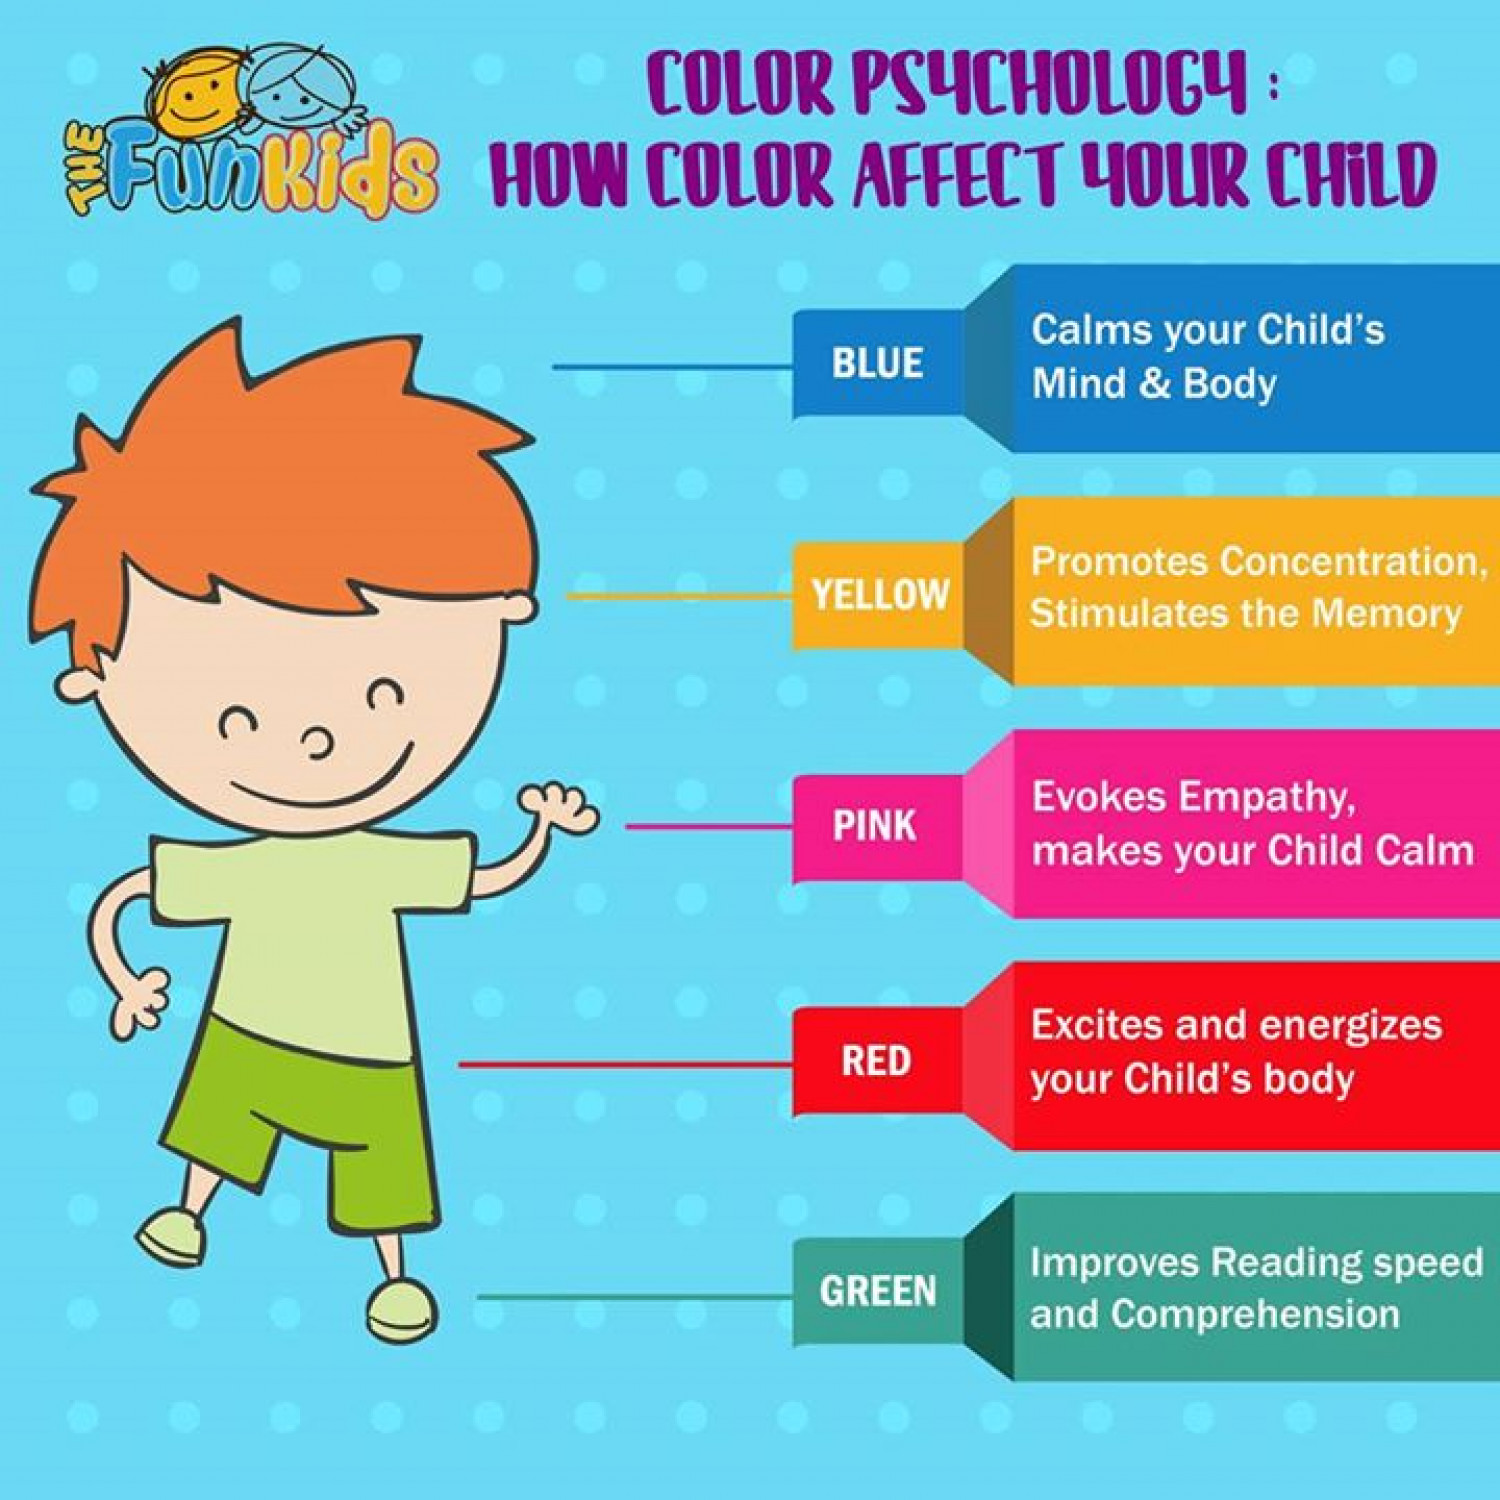 Color Psychology The Effect Of Color On Your Child